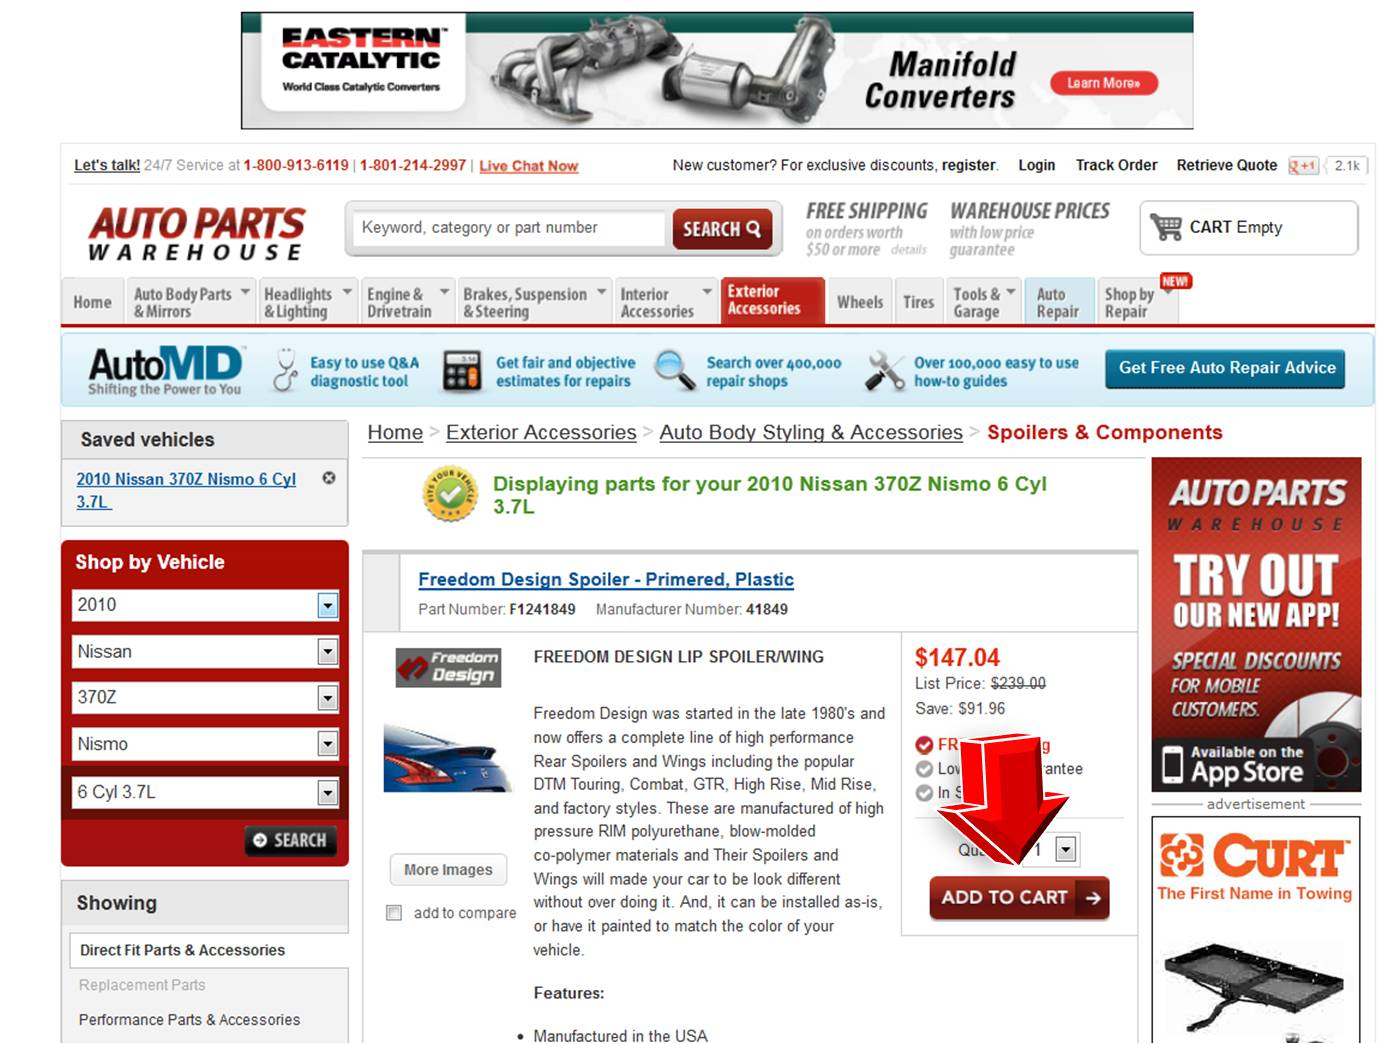 Auto parts warehouse coupons discount codes